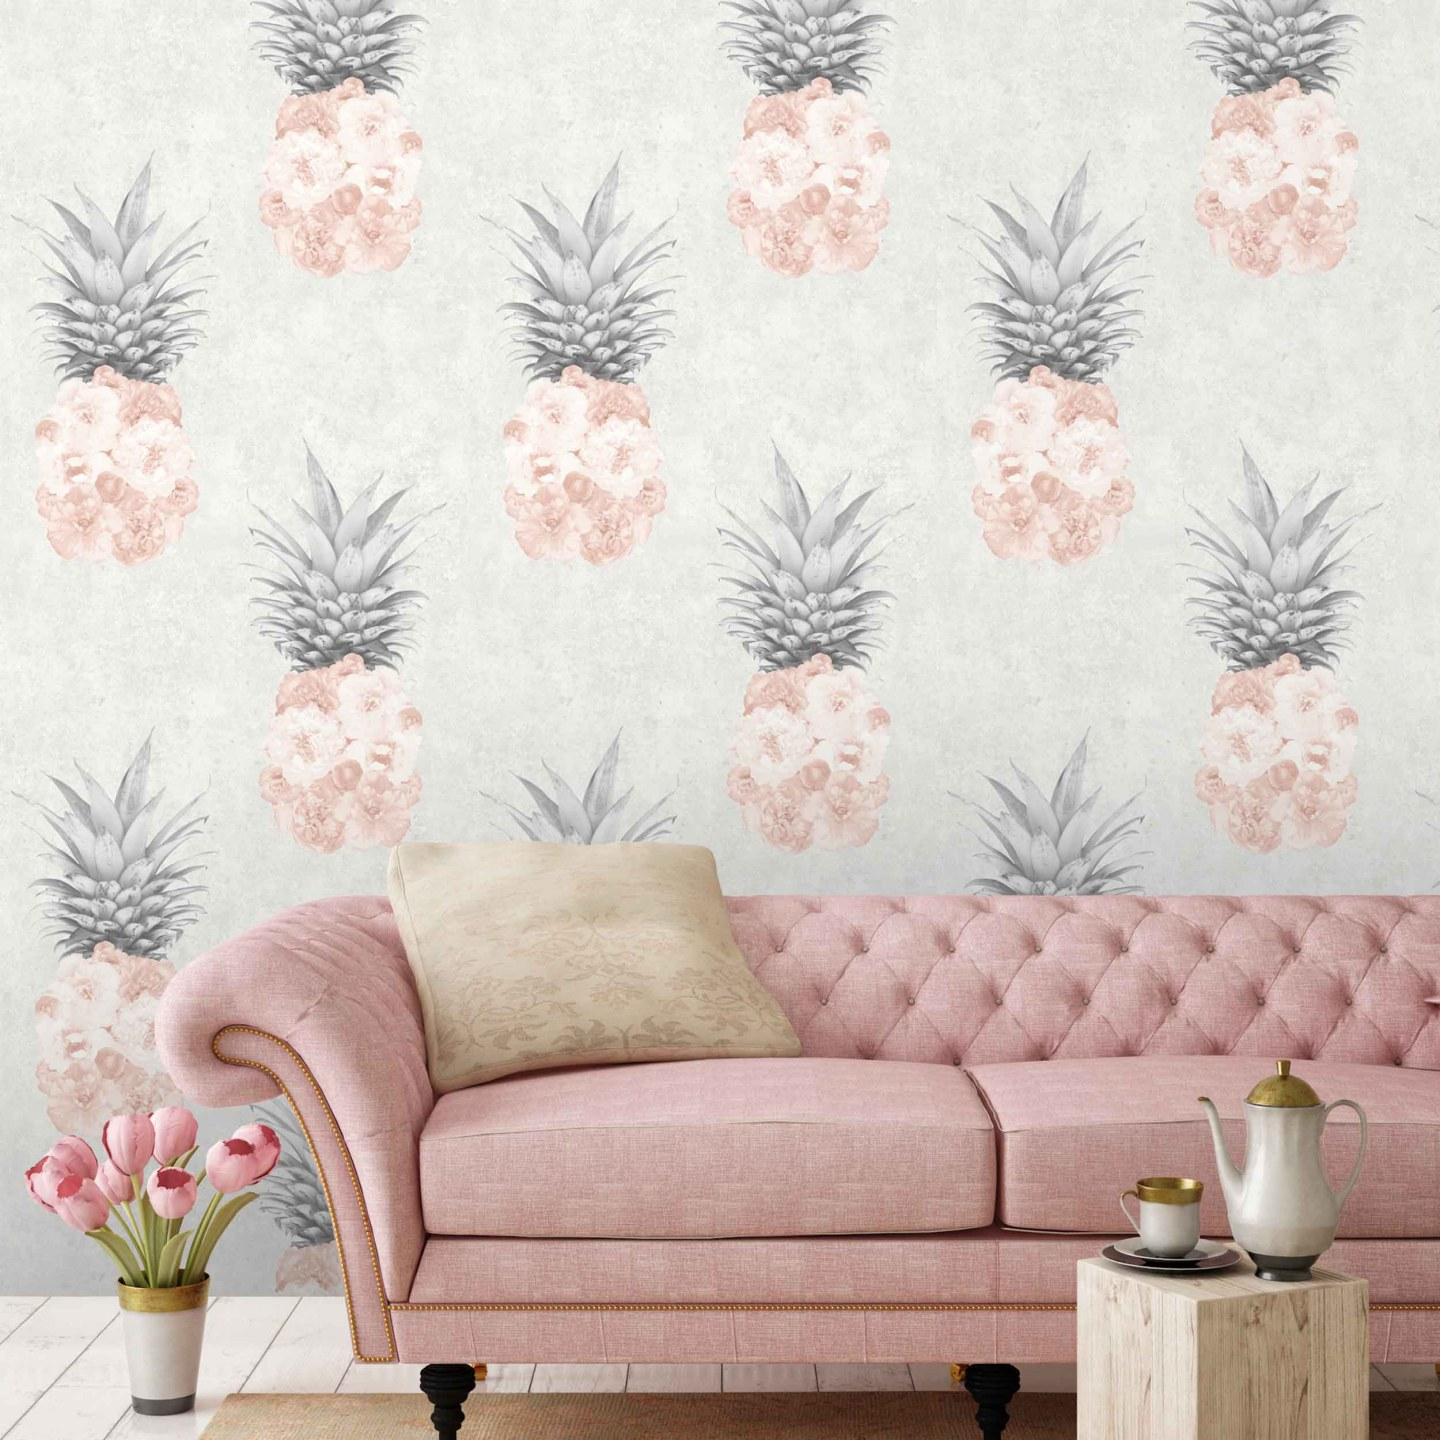 Woodchip-and-Magnolia-Ludic-Blush-Pink-Pineapple-Wallpaper-1882747-1-1440x1440 Pineapple Decor: Tips for Decorating Your Home with Southern Hospitality